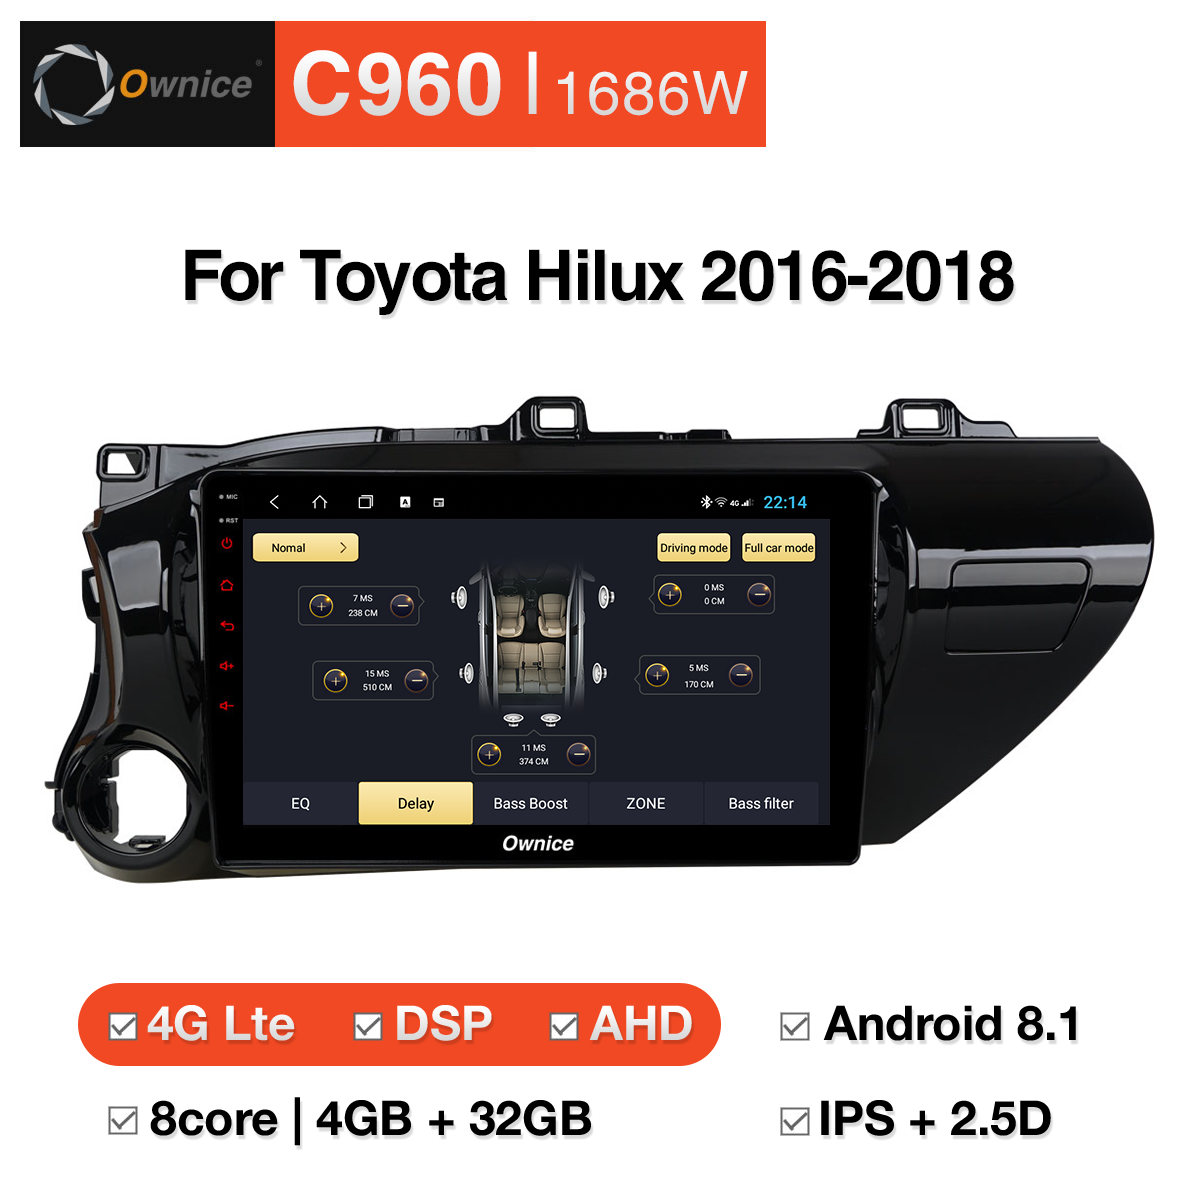 Tổng hợp DVD Android Ownice C960 cho Toyota